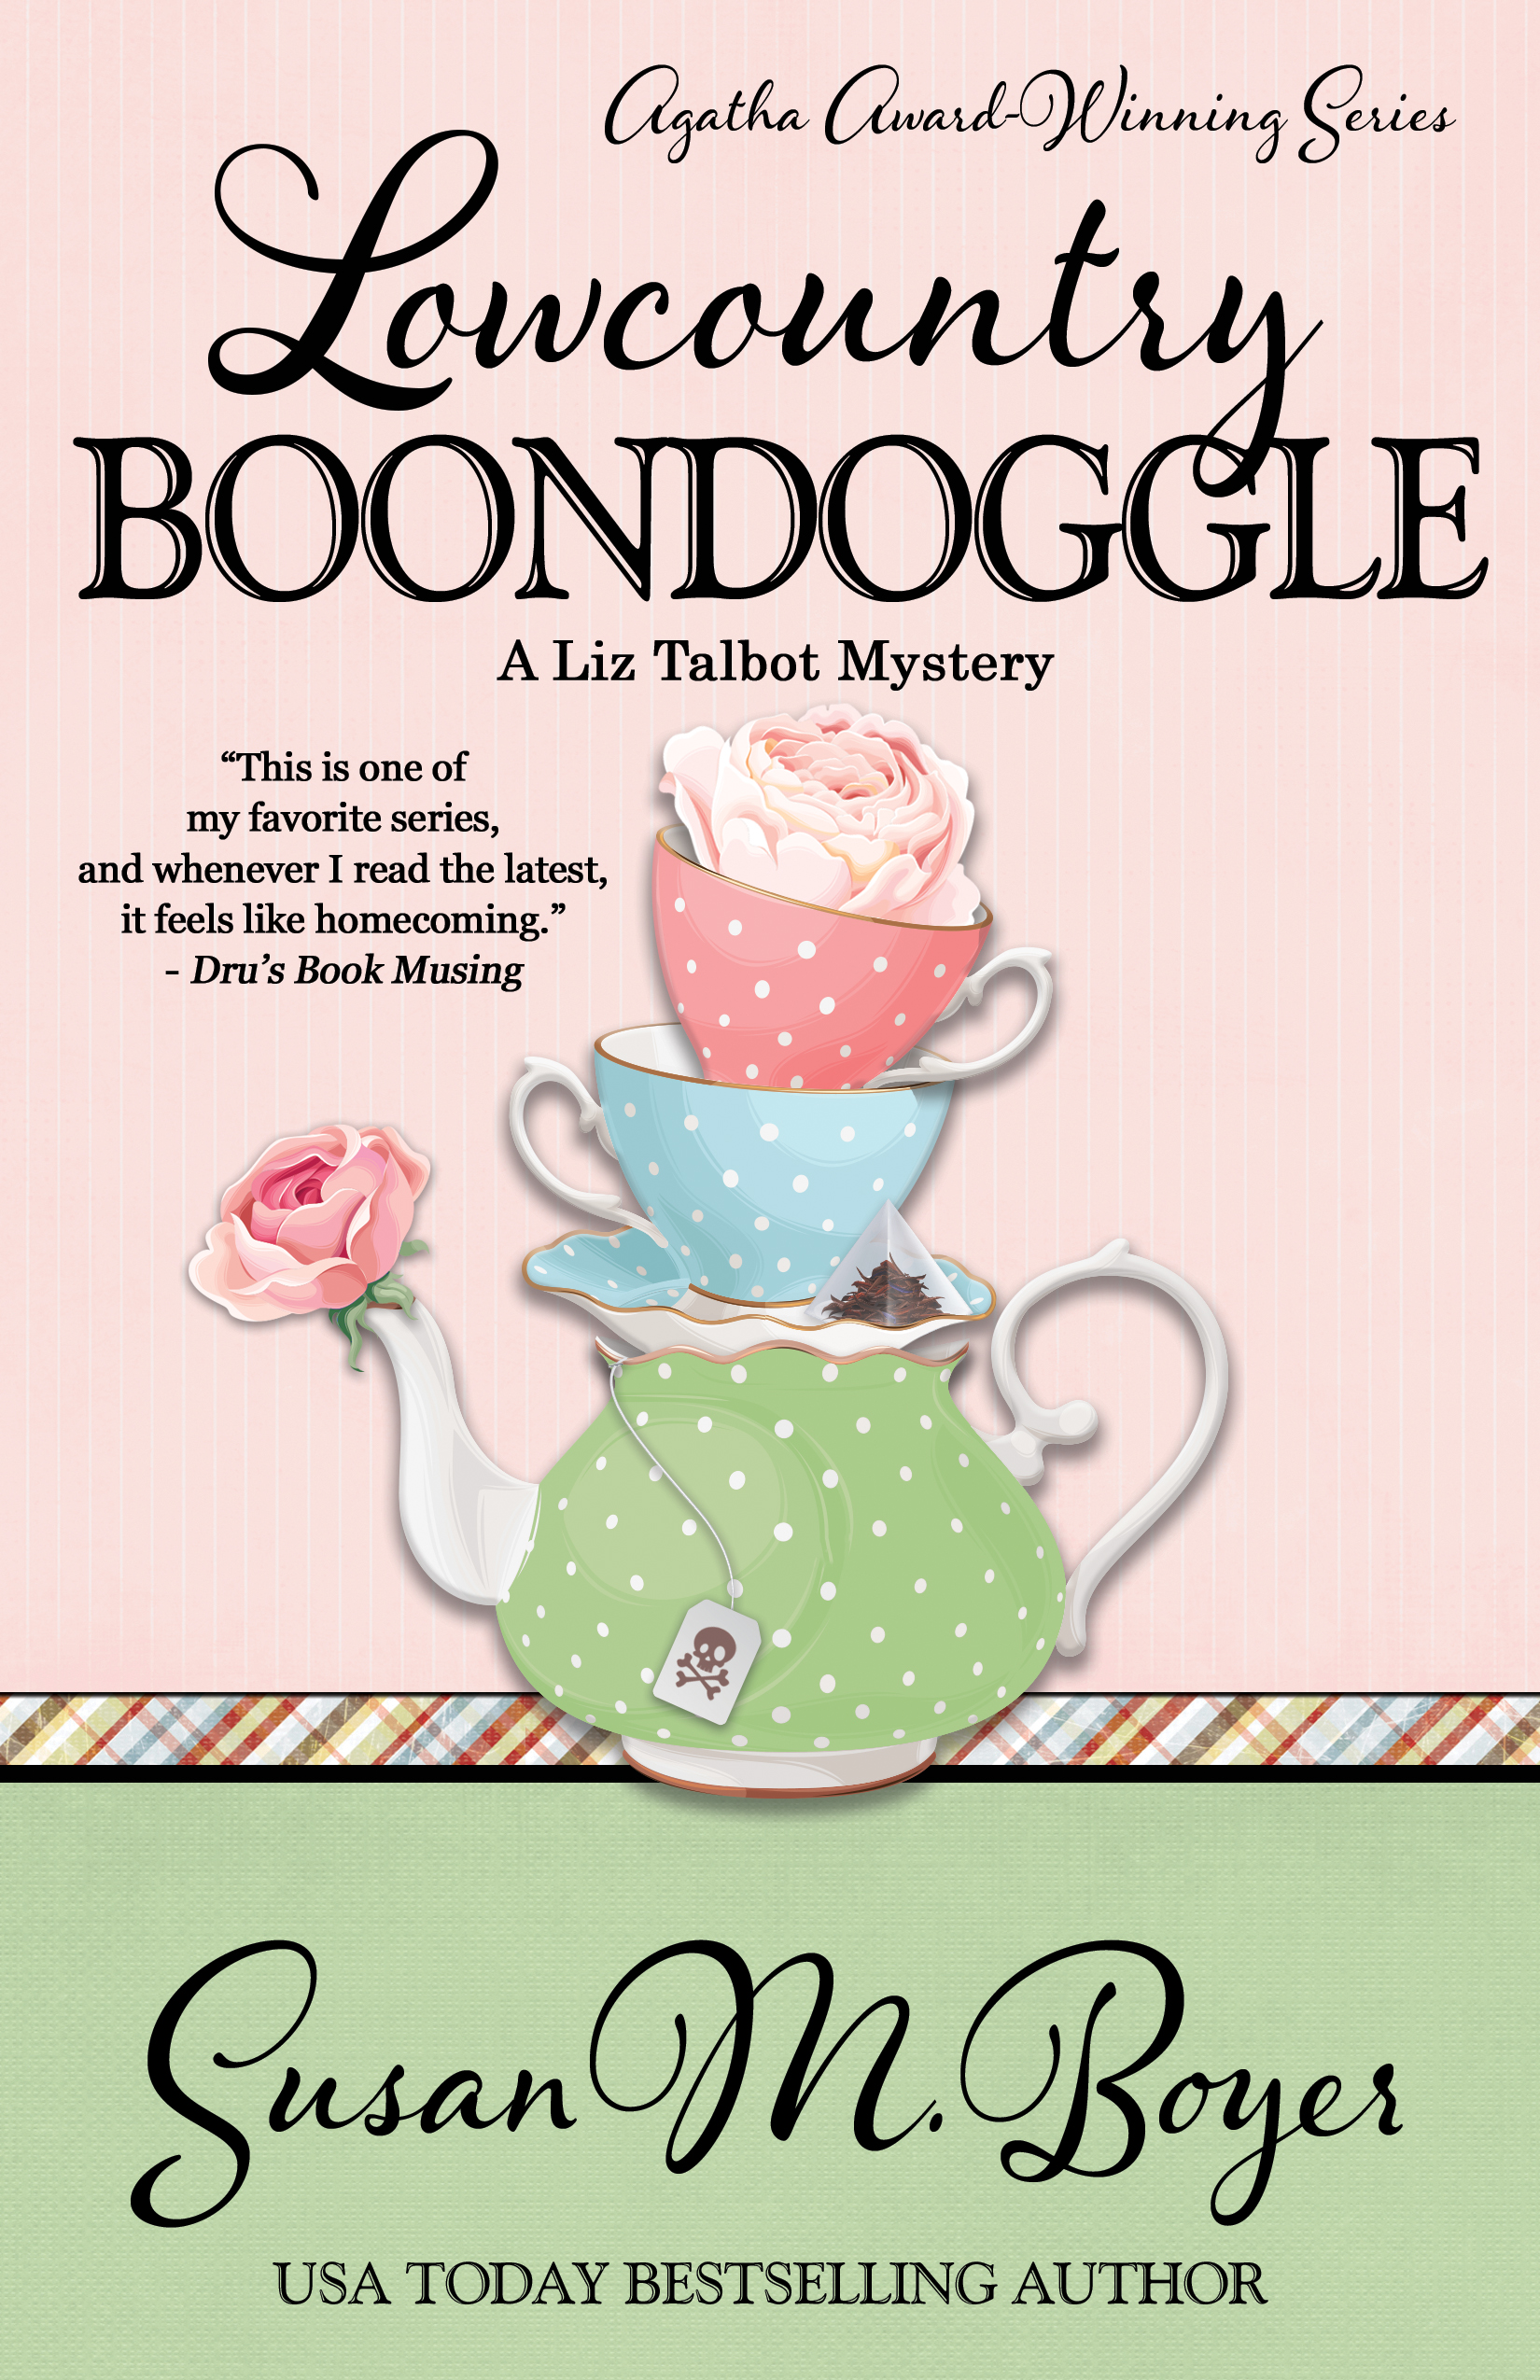 Lowcountry Boondoggle by Susan M. Boyer